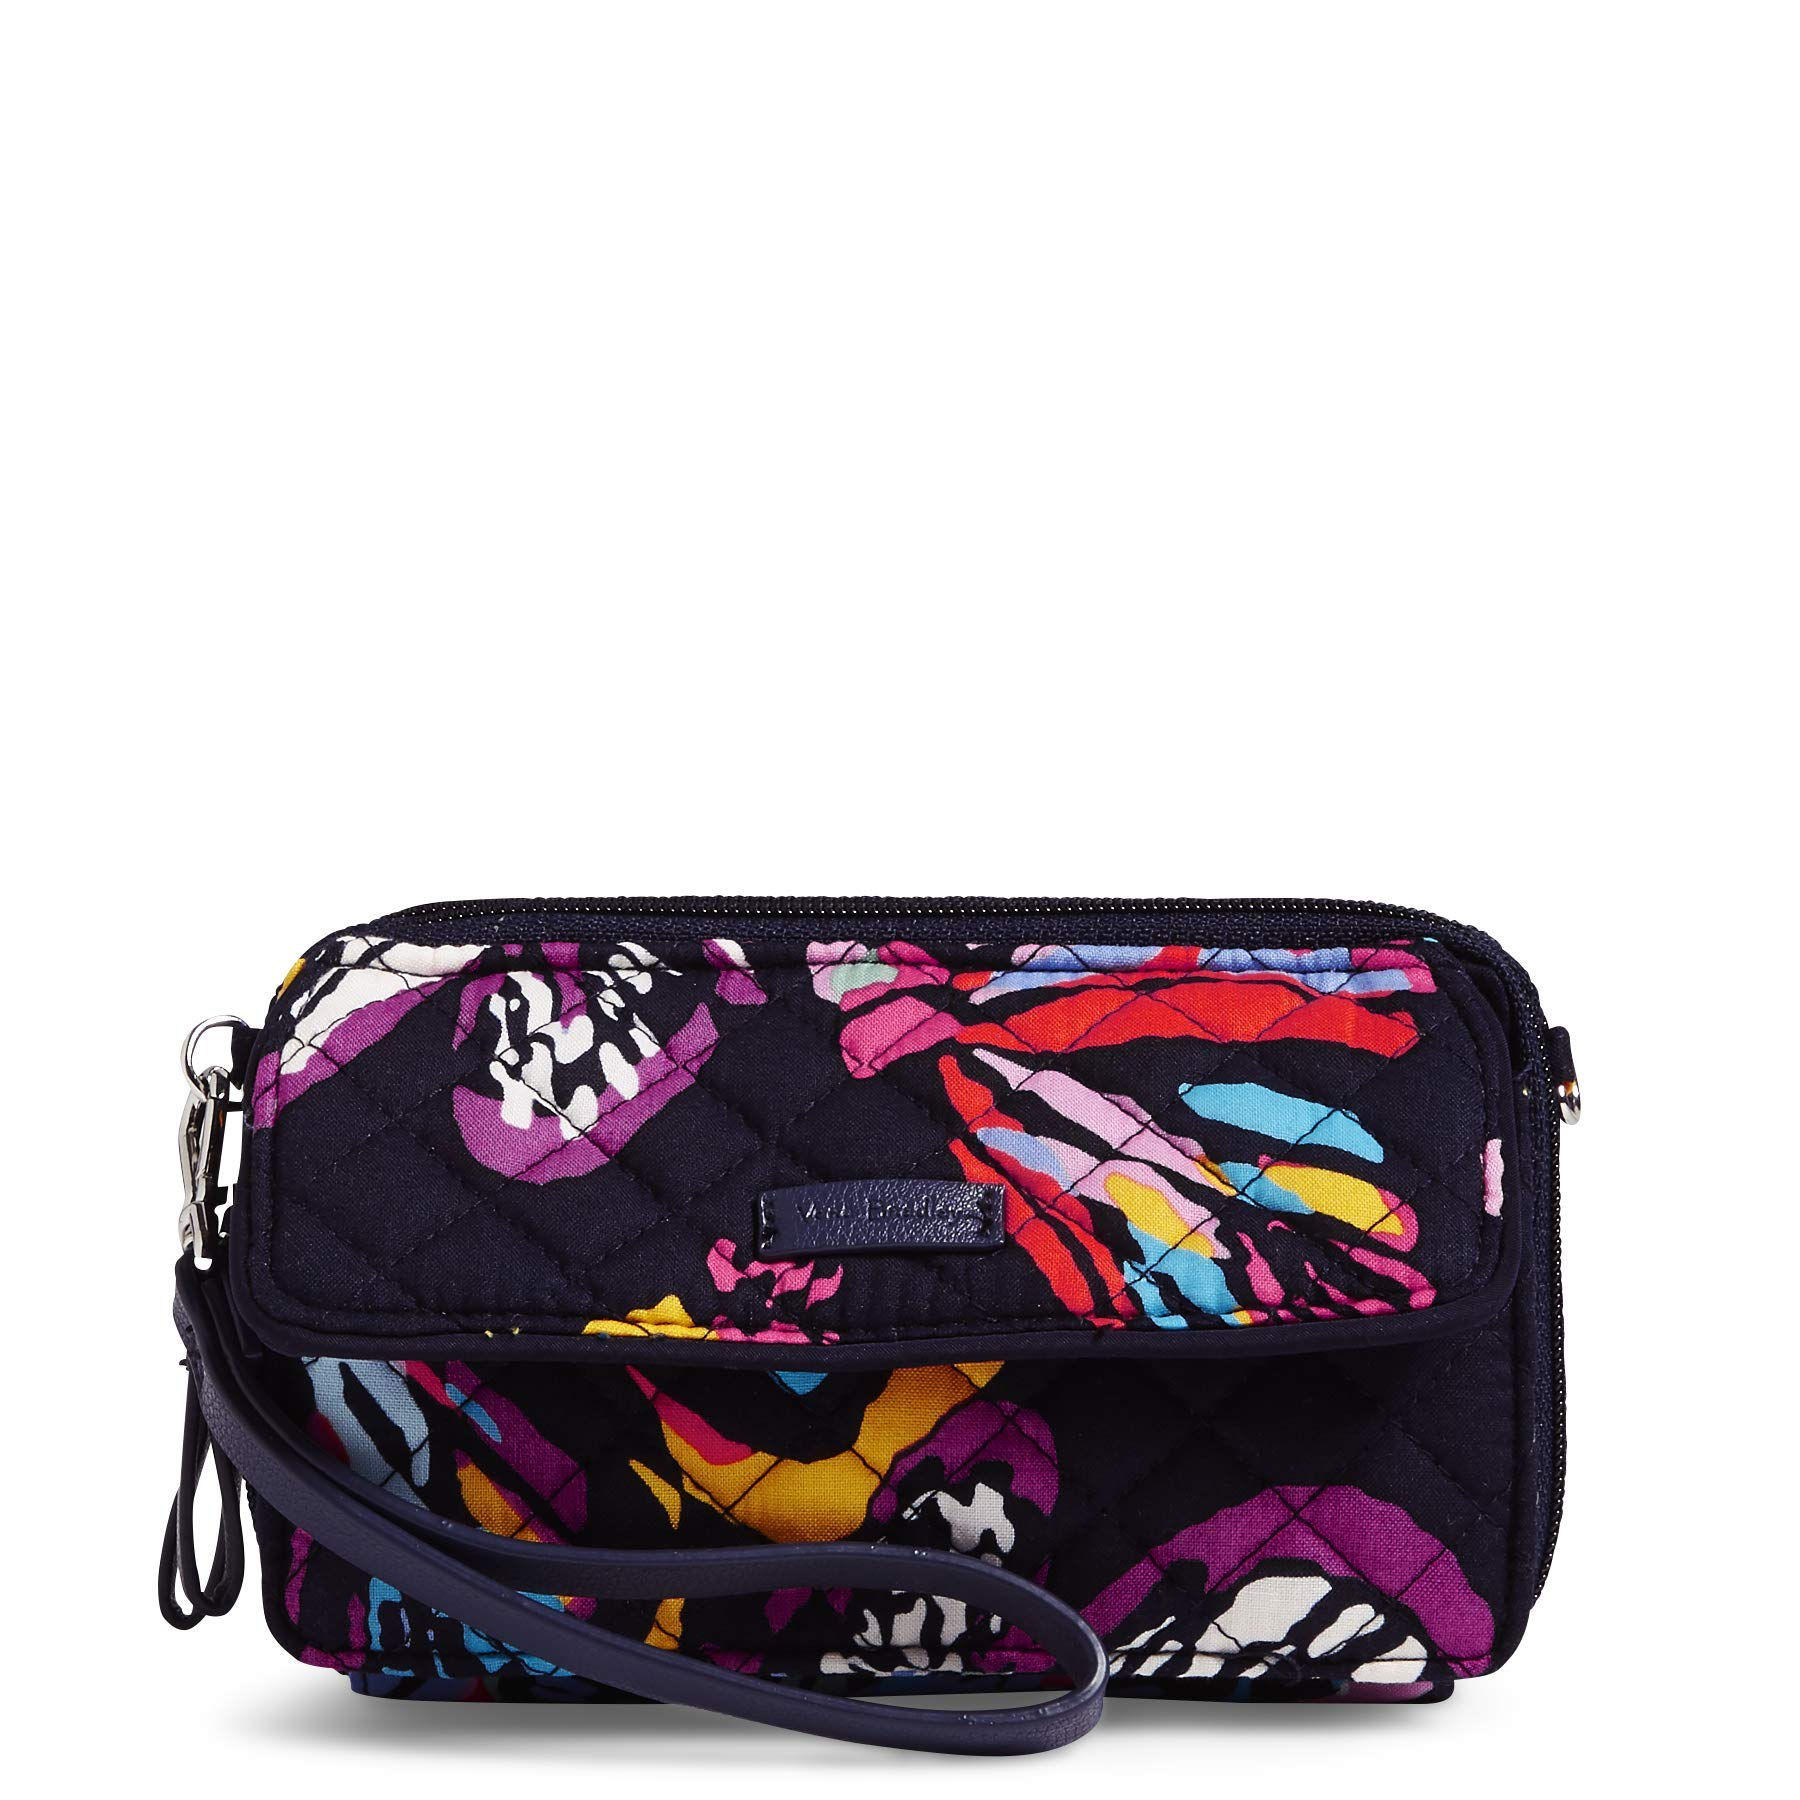 Vera Bradley Iconic RFID All in One Crossbody, Signature Cotton, Butterfly Flutter, Butterfly Flutter, One Size